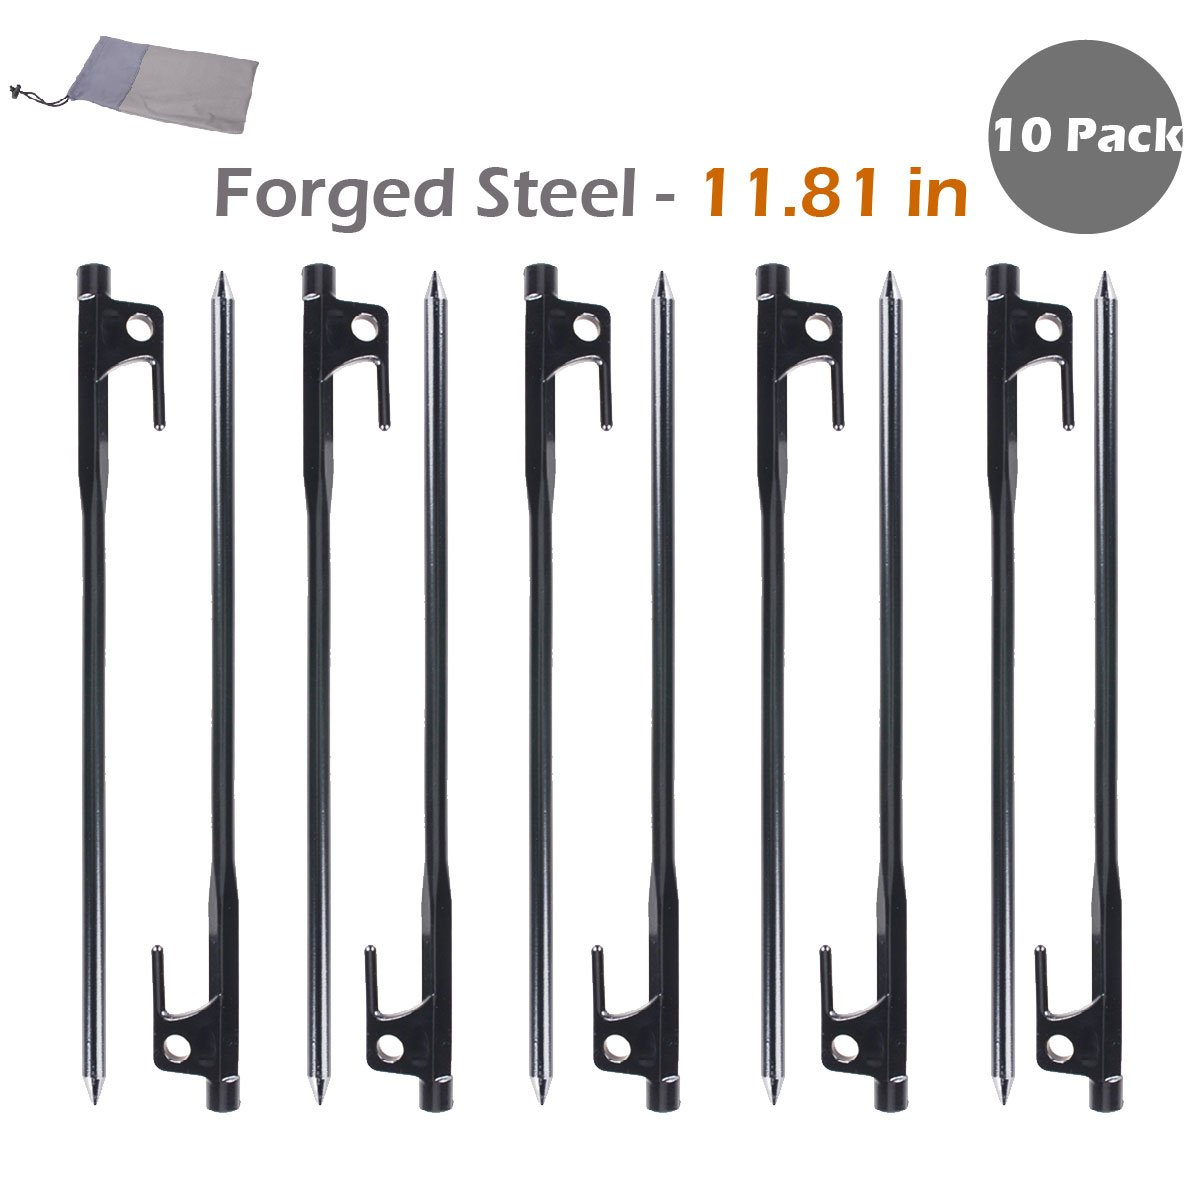 TRIWONDER Forged Steel Tent Stakes Heavy Duty Tarp Pegs Solid Stakes Footprint Camping Stakes (Black - 11.81in - 10 Pack) by TRIWONDER